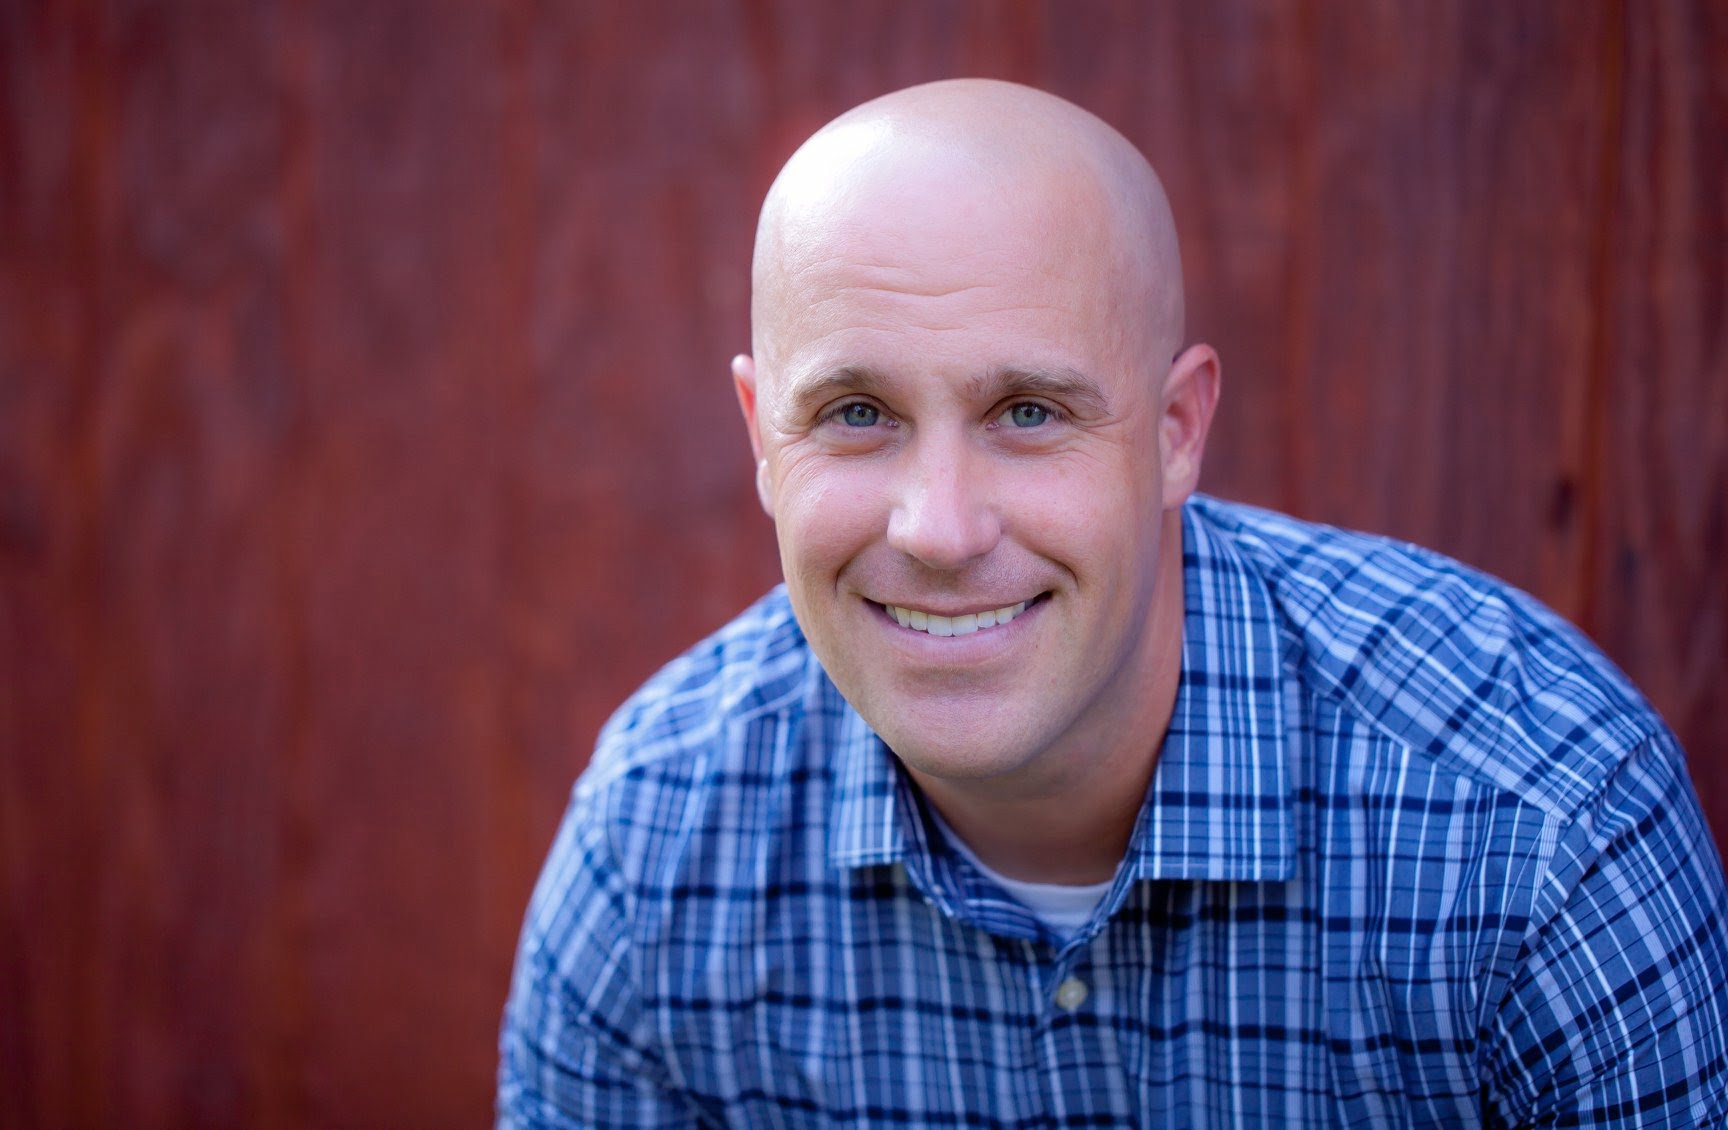 Visiontech Solutions Group Announces Promotion of Chad Lockhart to Vice President of Business Development